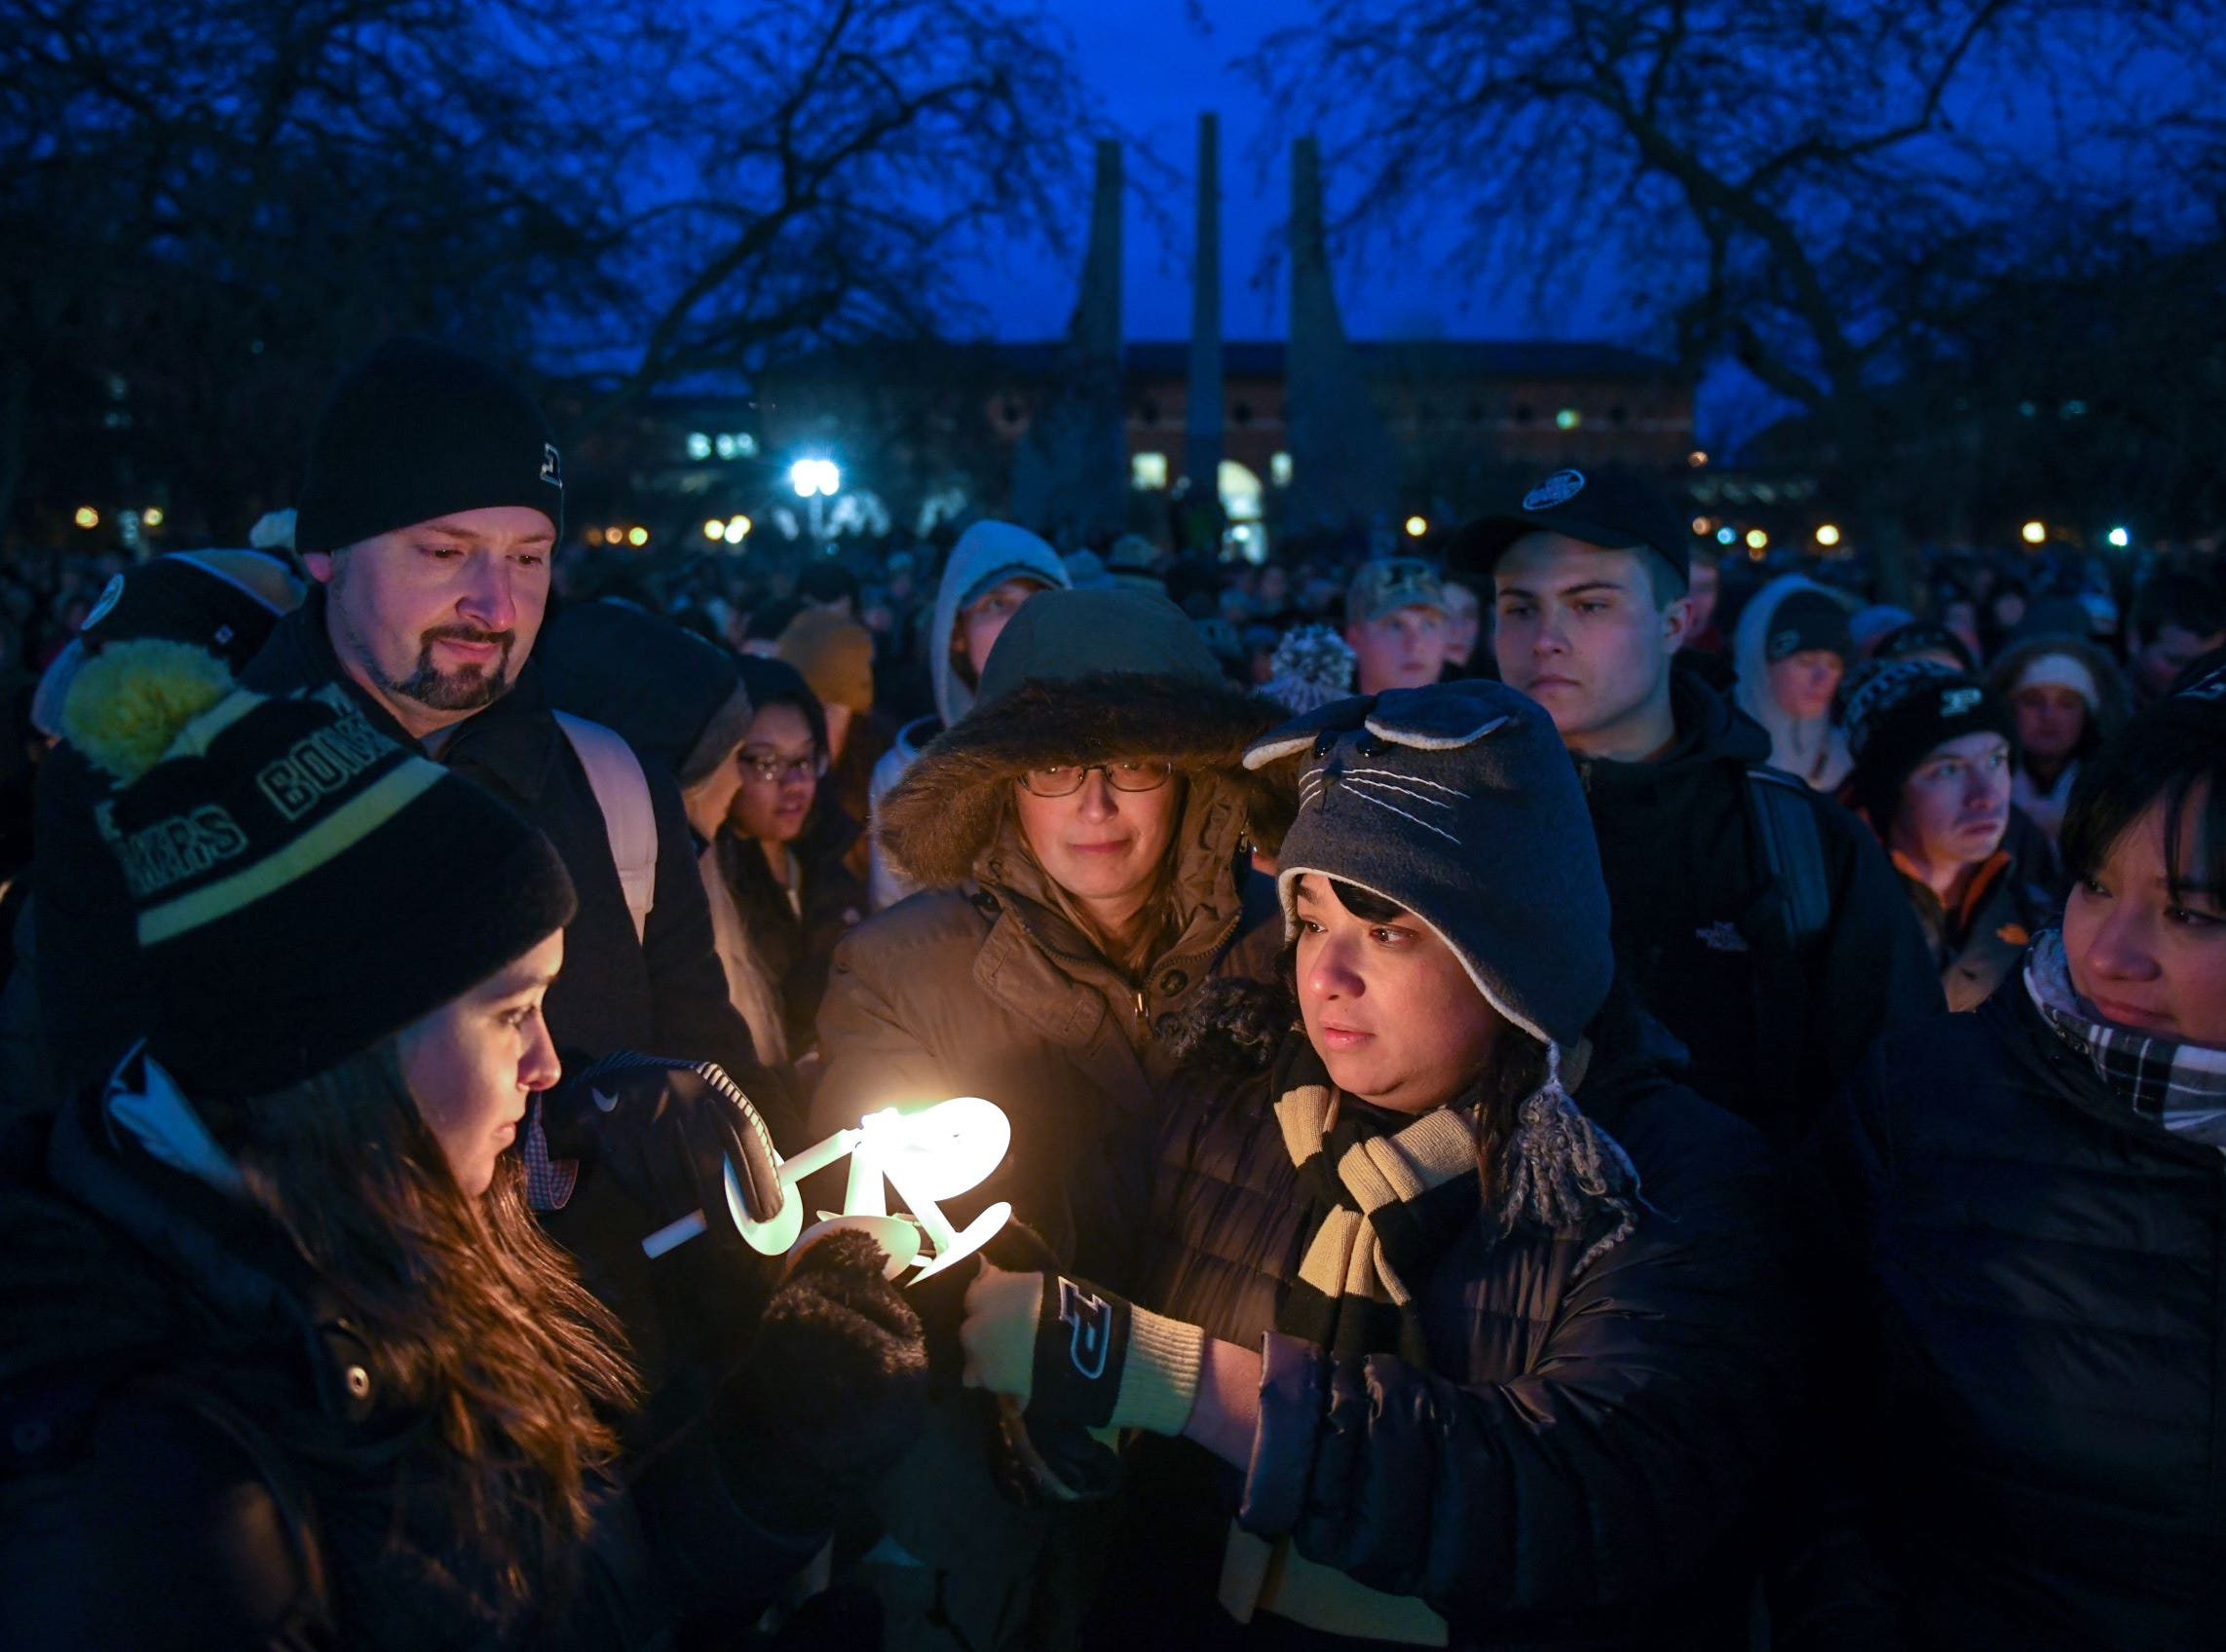 A crowd of about 2,000 people honored Tyler Trent at a memorial service and candlelight vigil at Purdue University in West Lafayette on January 9, 2019.